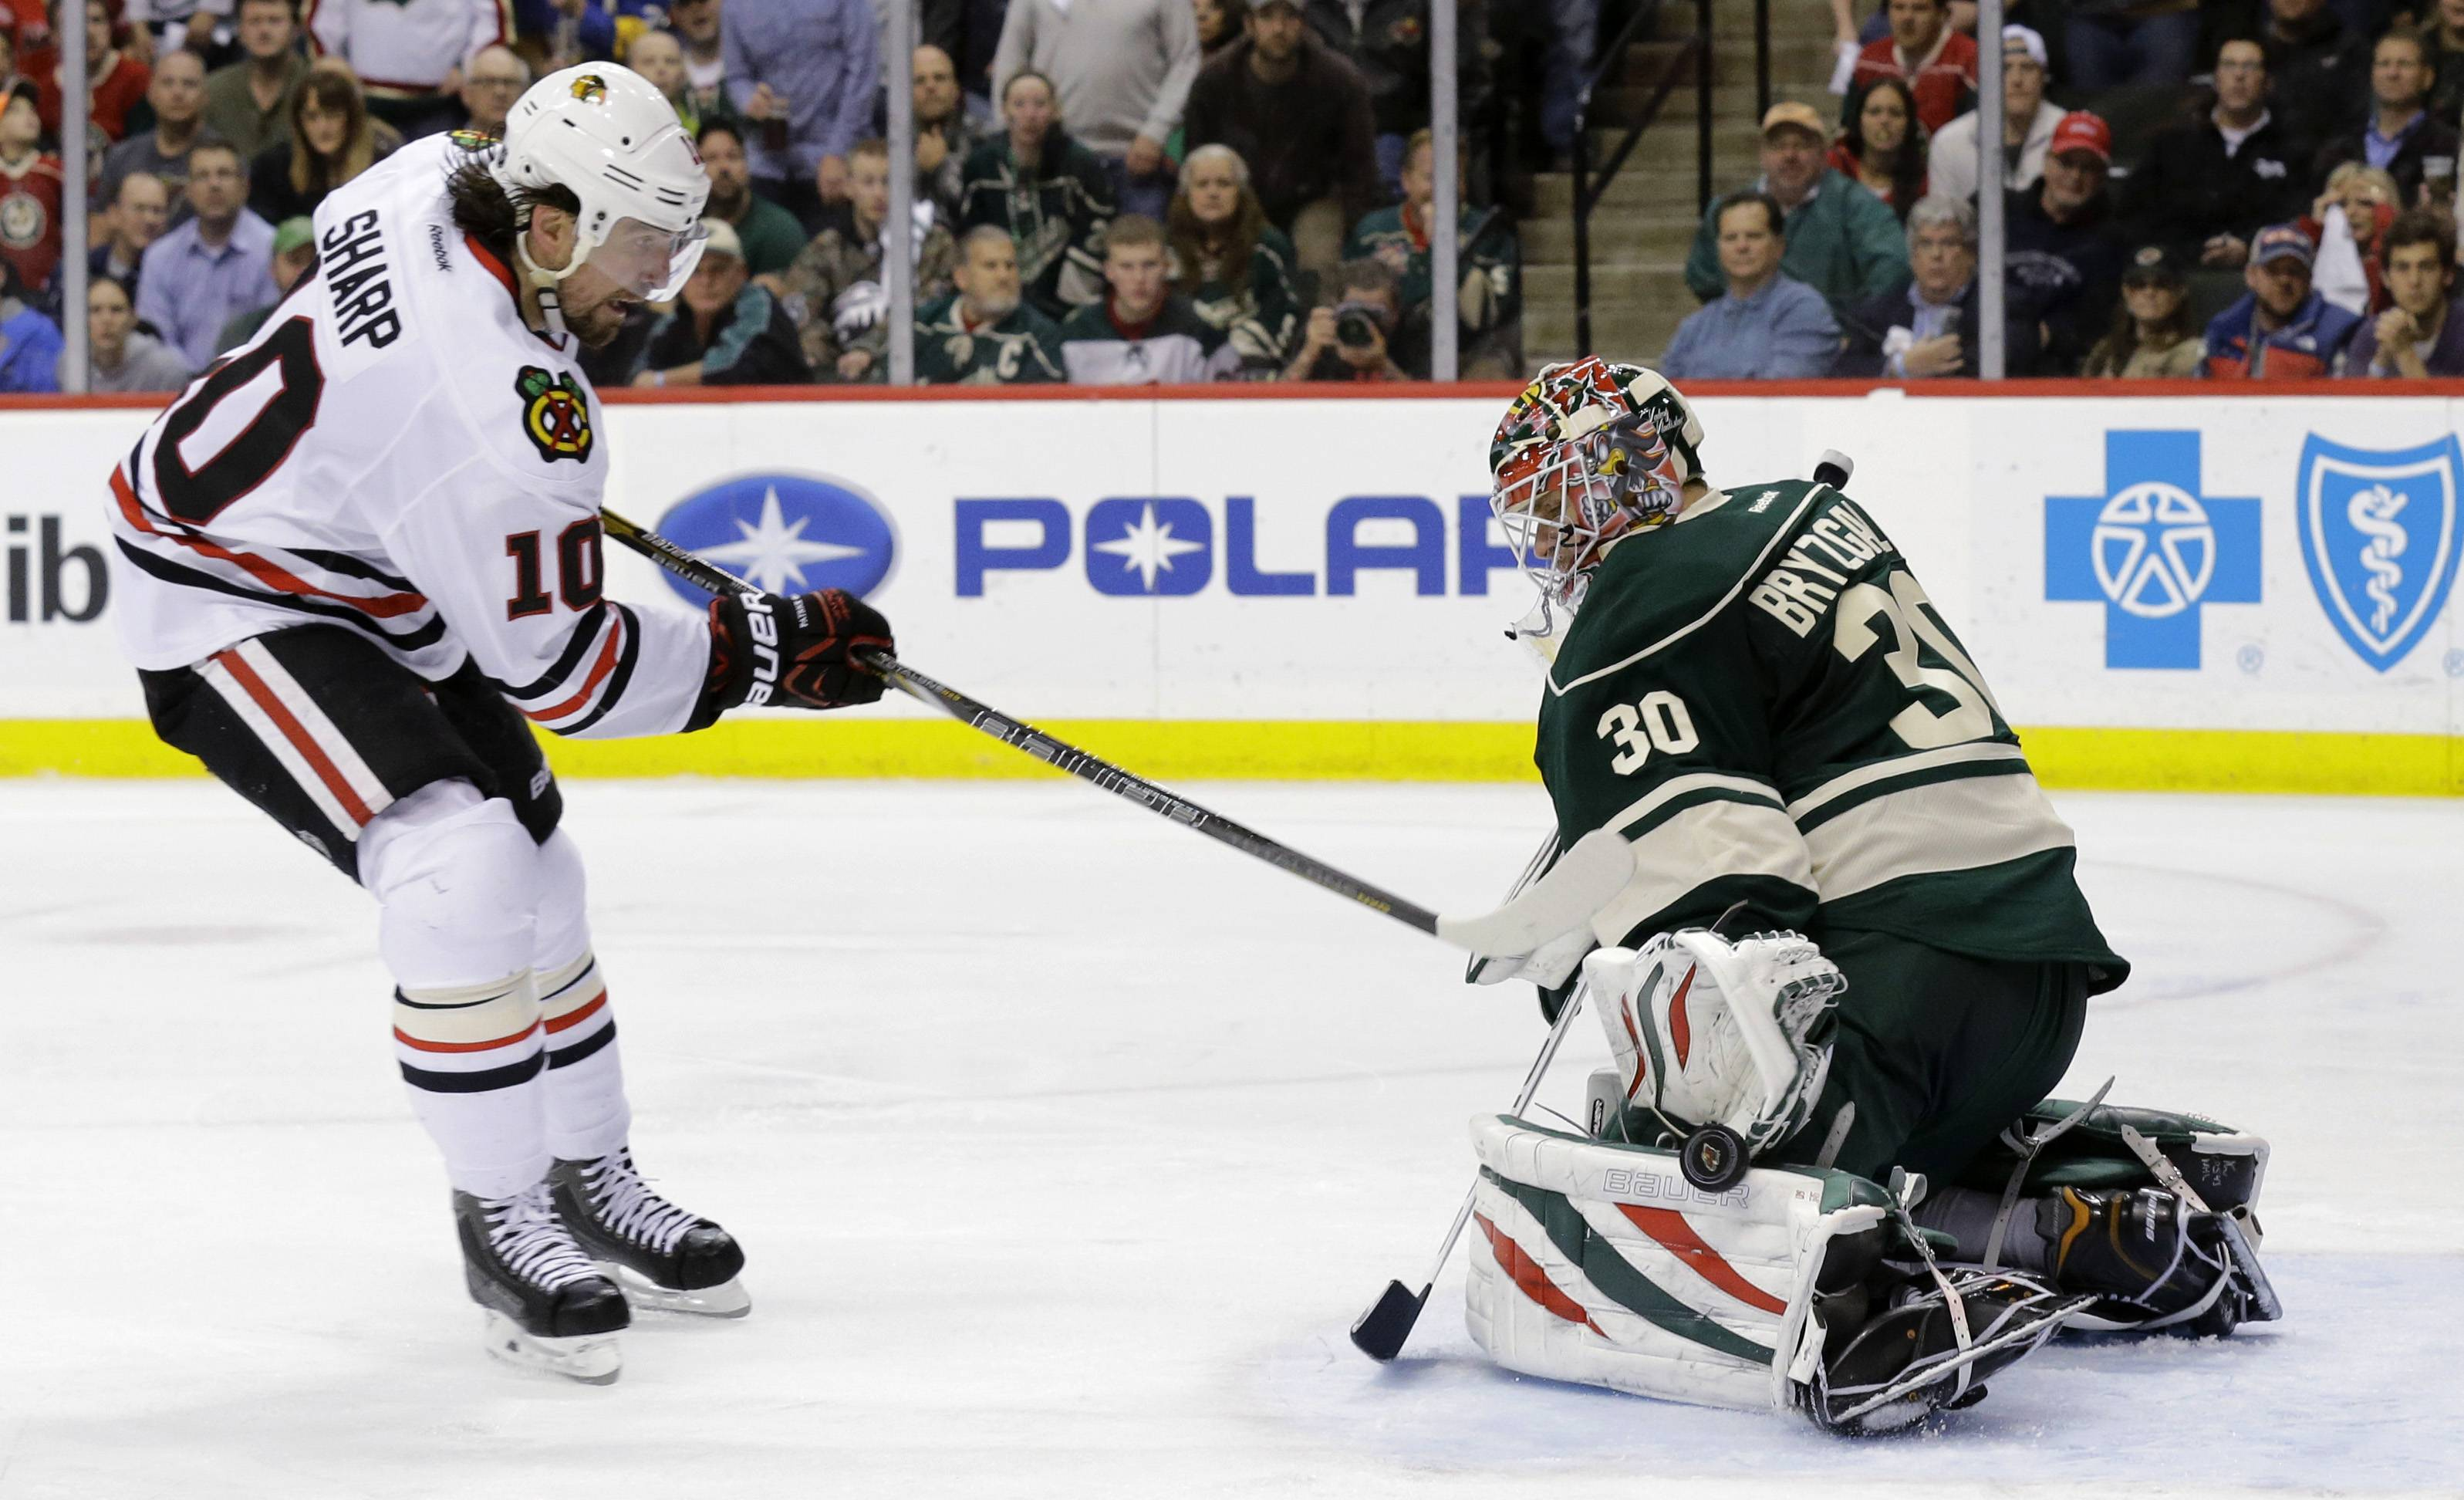 Minnesota Wild goalie Ilya Bryzgalov (30), of Russia, deflects a point-blank shot by Chicago Blackhawks left wing Patrick Sharp (10) during the second period.